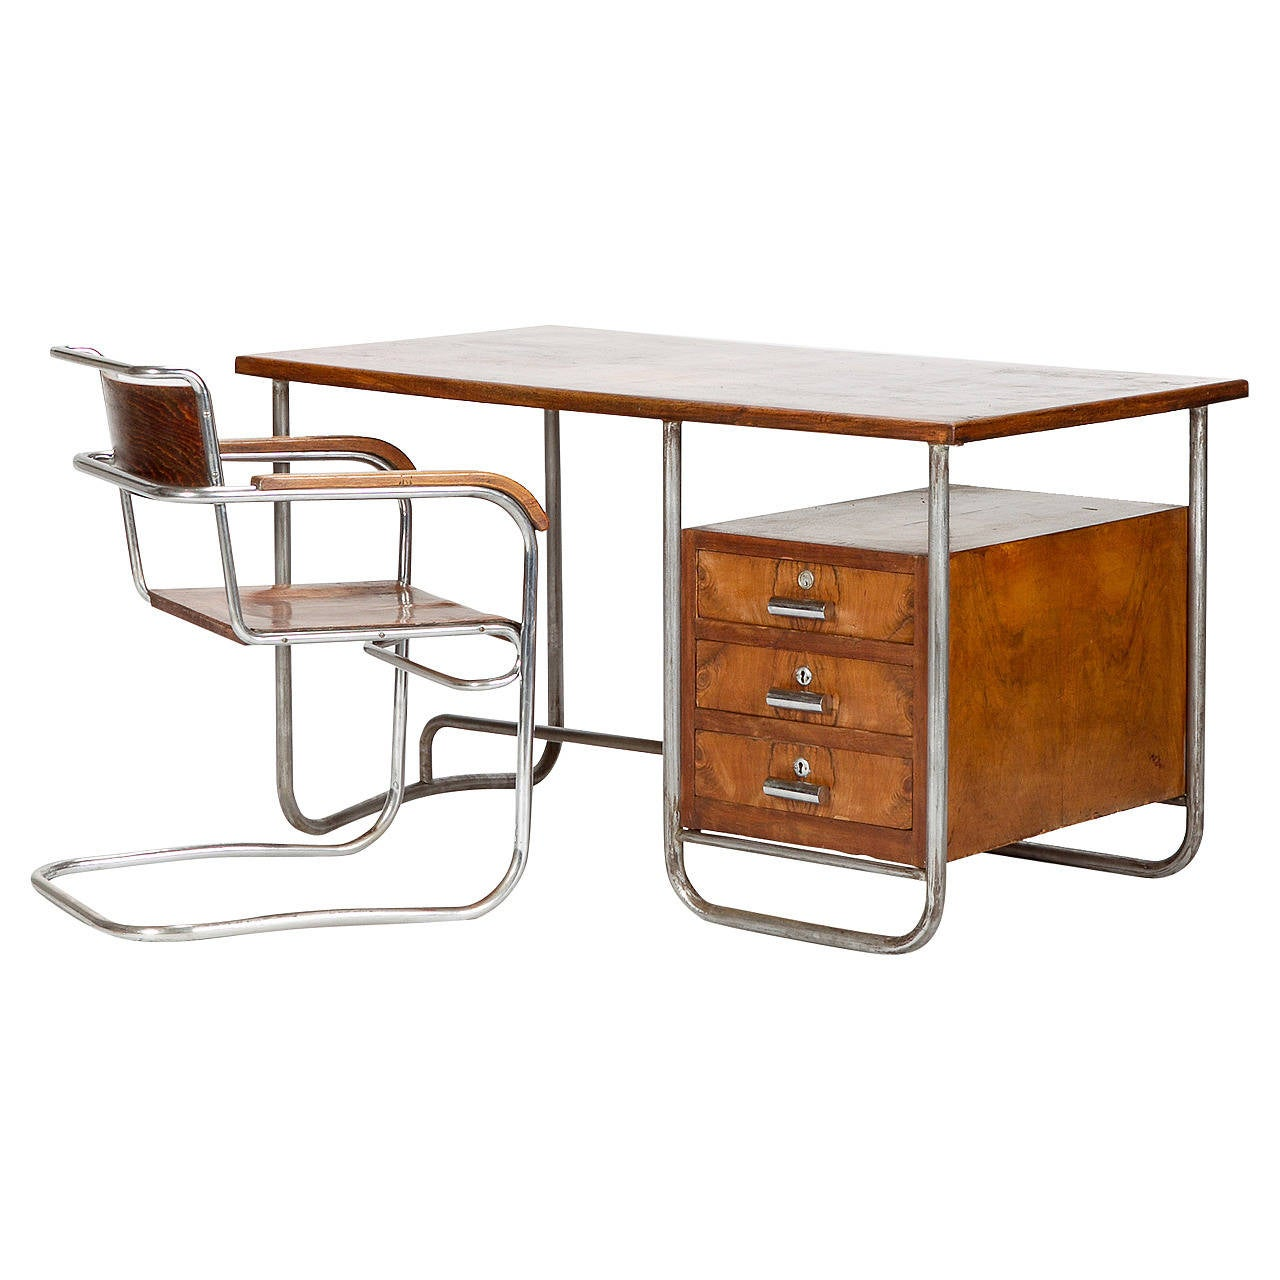 italian bauhaus desk and chair by marcel breuer 1930s at 1stdibs. Black Bedroom Furniture Sets. Home Design Ideas